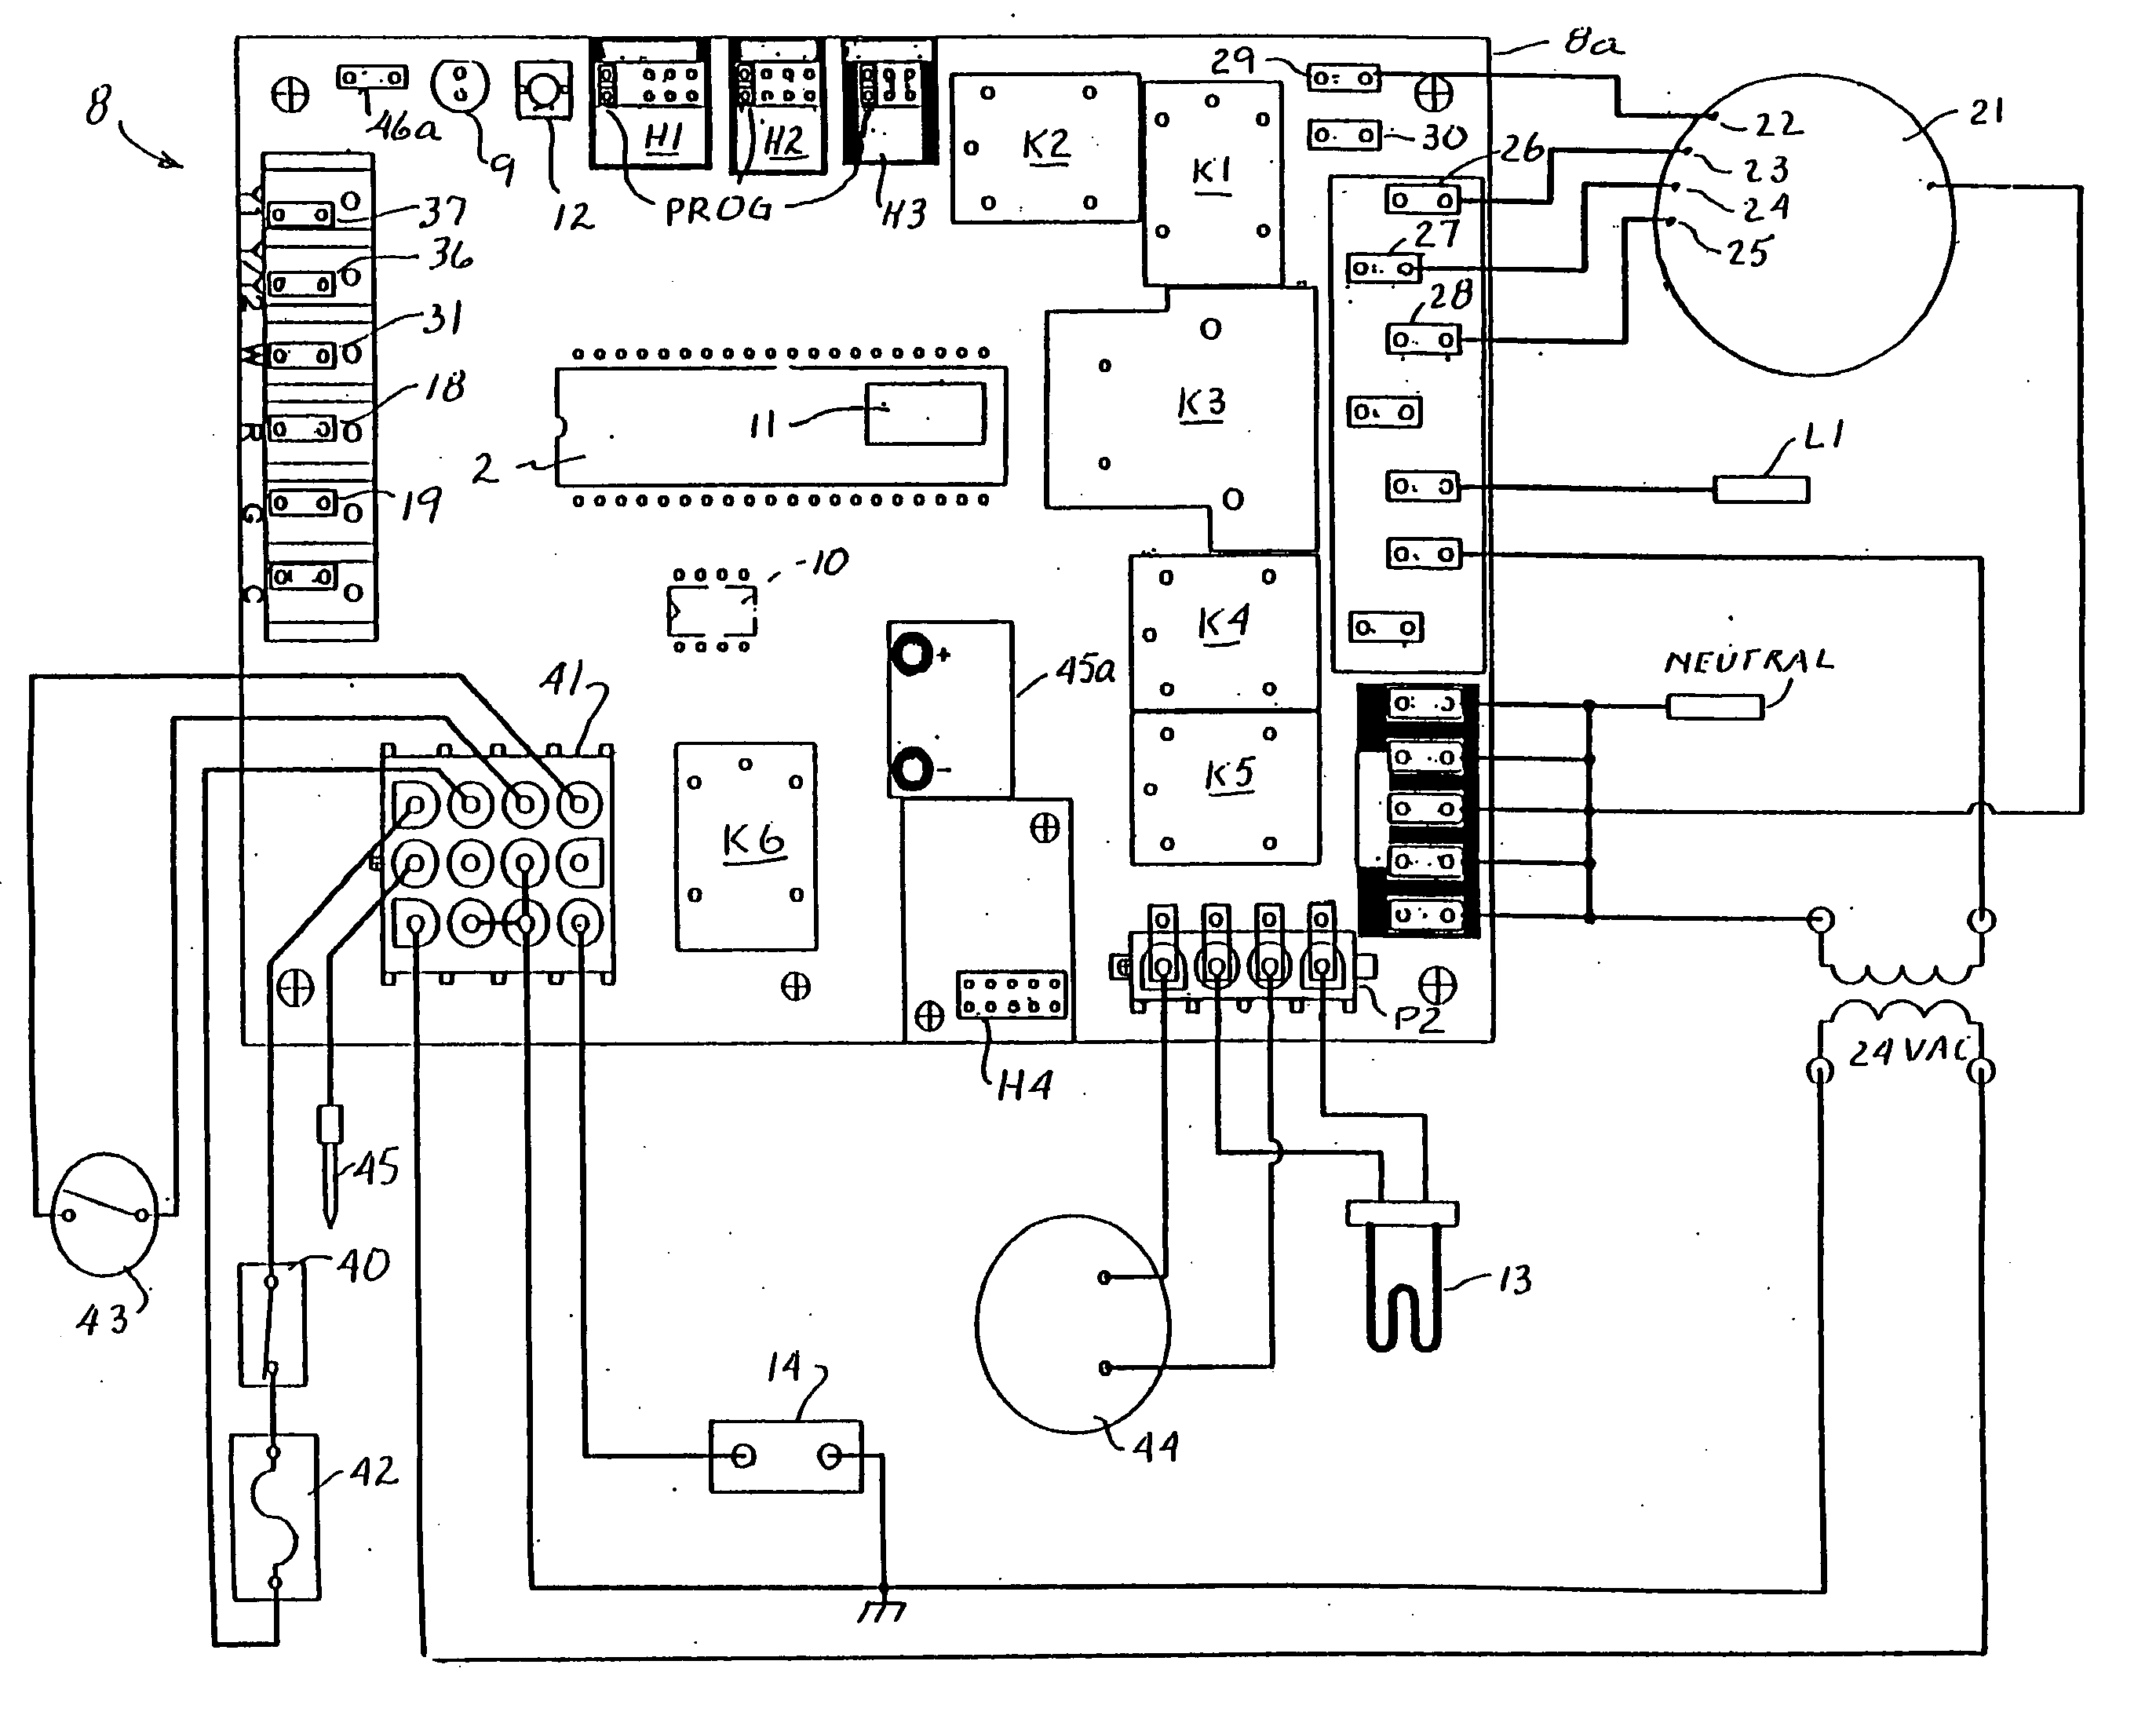 Unique Wiring Diagram For Goodman Gas Furnace Diagram Diagramsample Diagramtemplate Wiringdiagram Diagramchart Worksheet Wor Diagram Gas Furnace Furnace